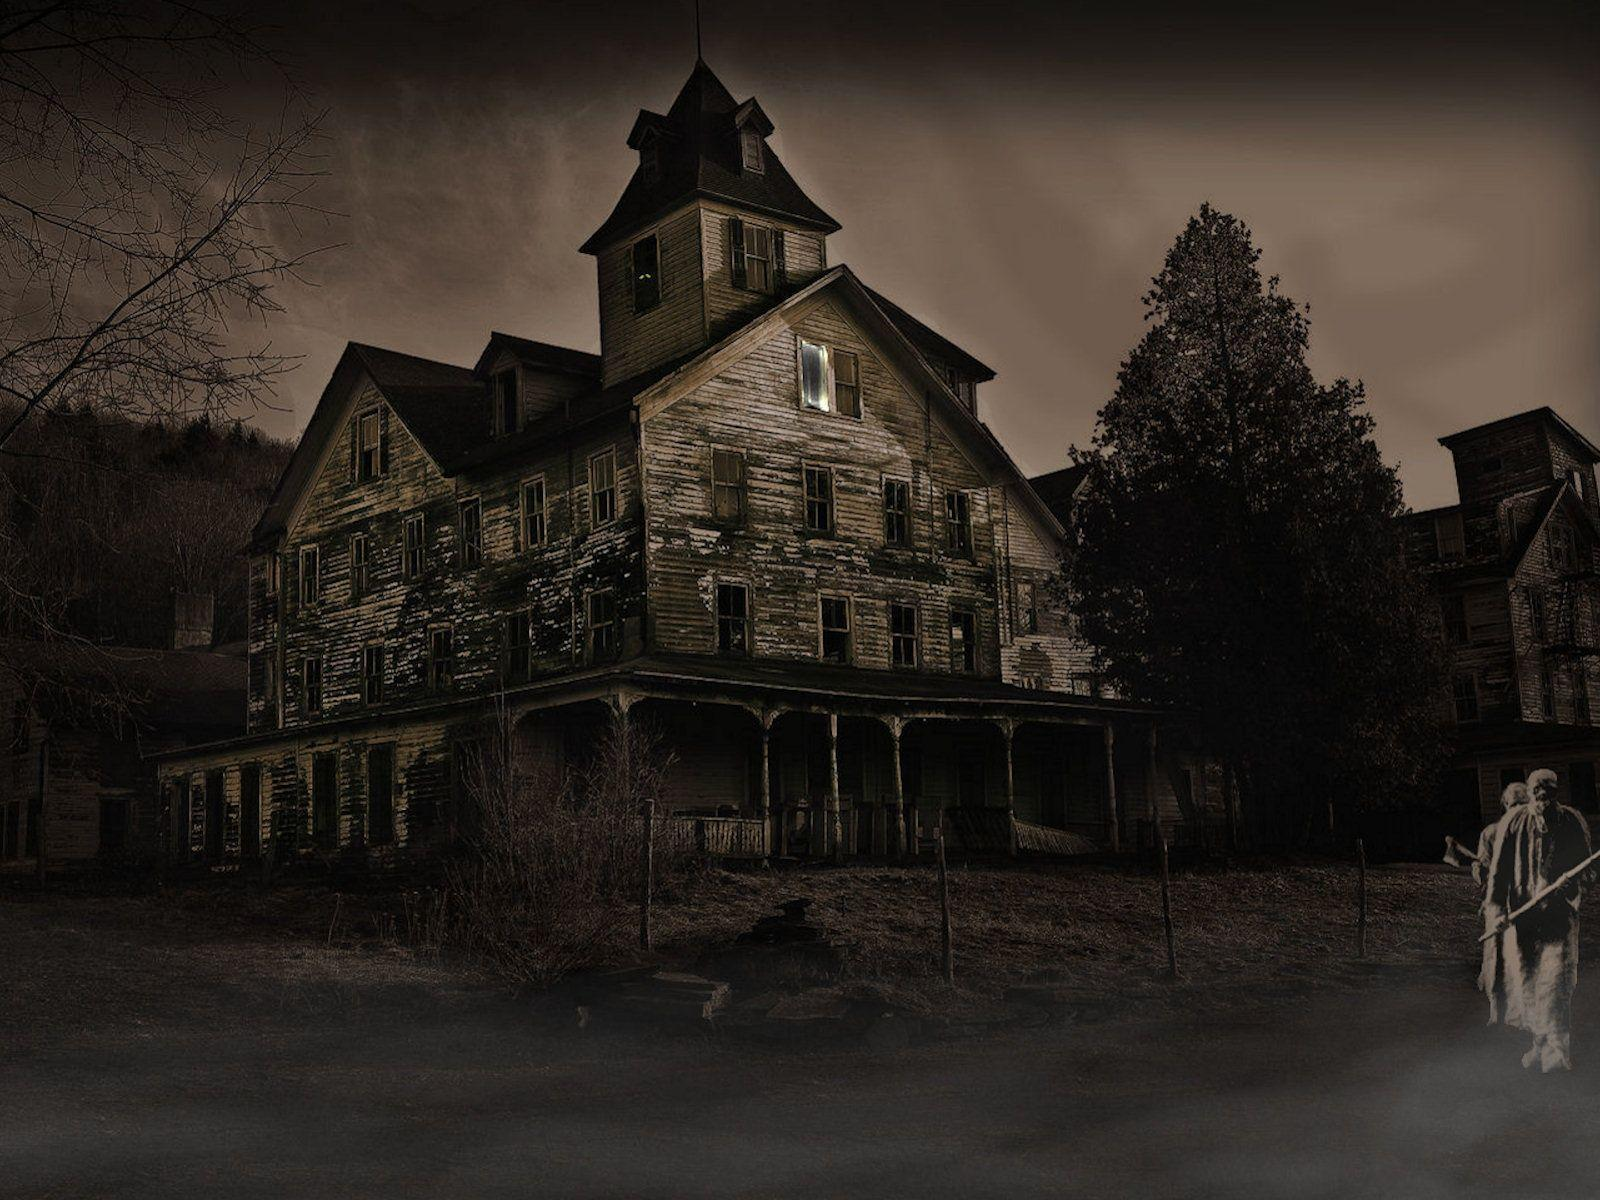 Haunted house desktop wallpapers wallpaper cave for Wallpaper with houses on